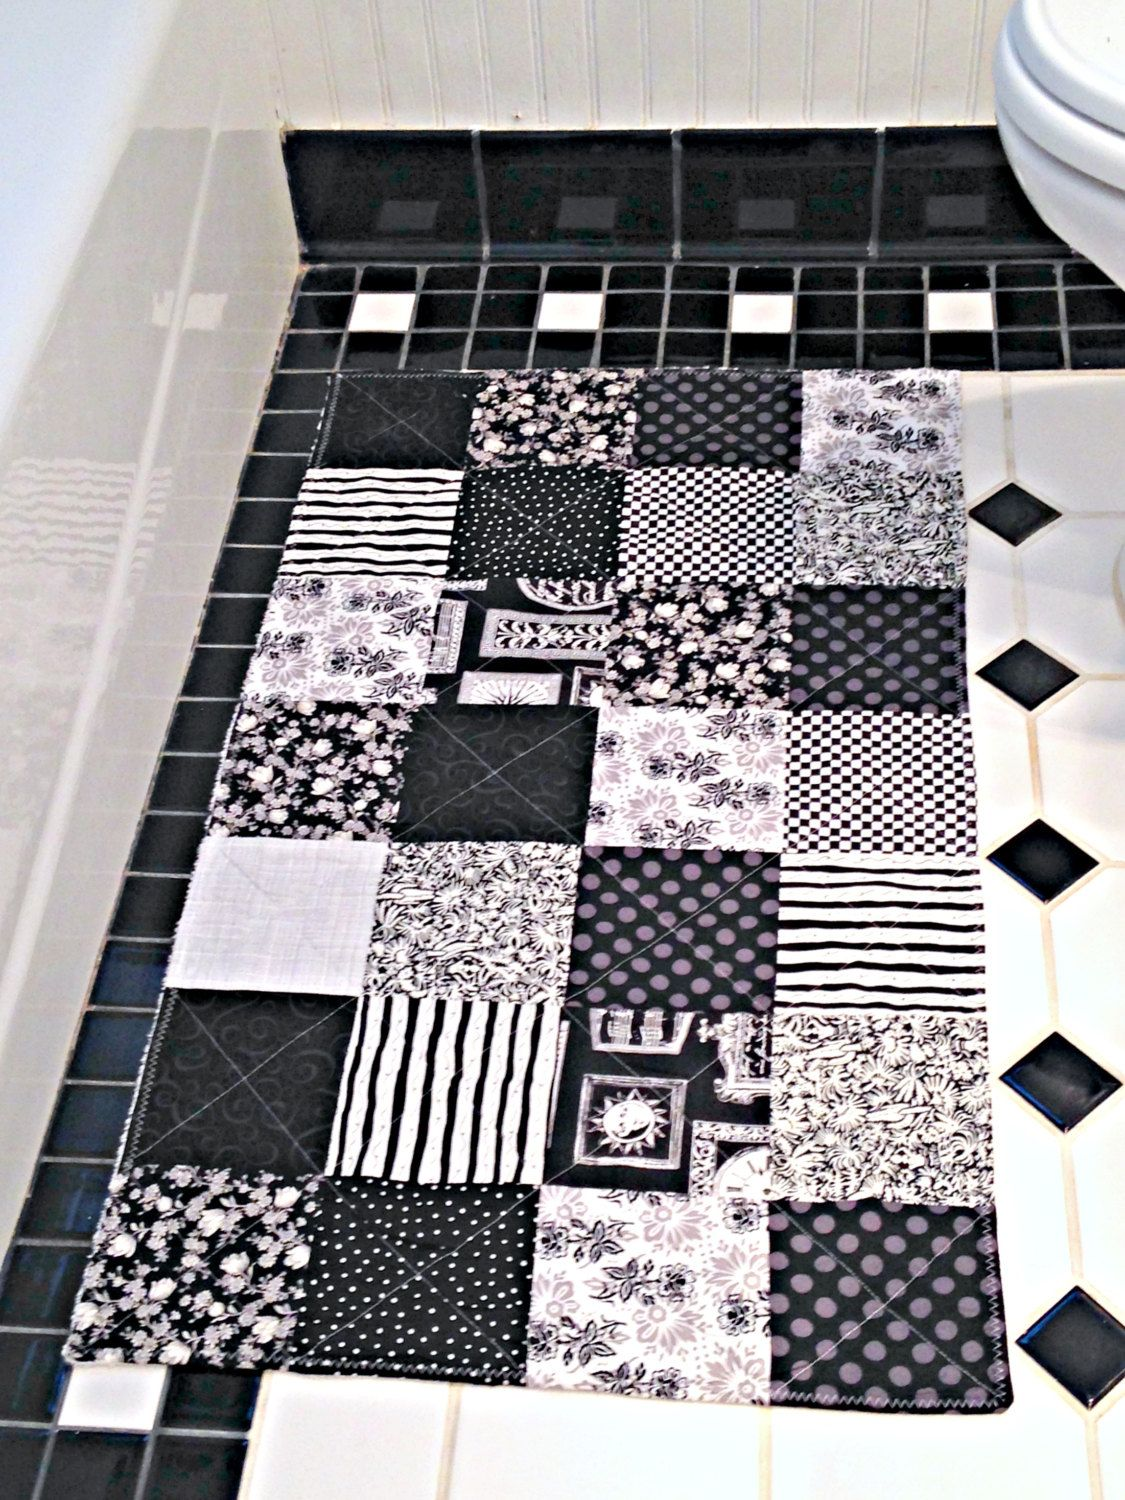 Black And White Bathroom Rug, Patchwork Bath Mat, Shower Mat, Laundry Room  Rug